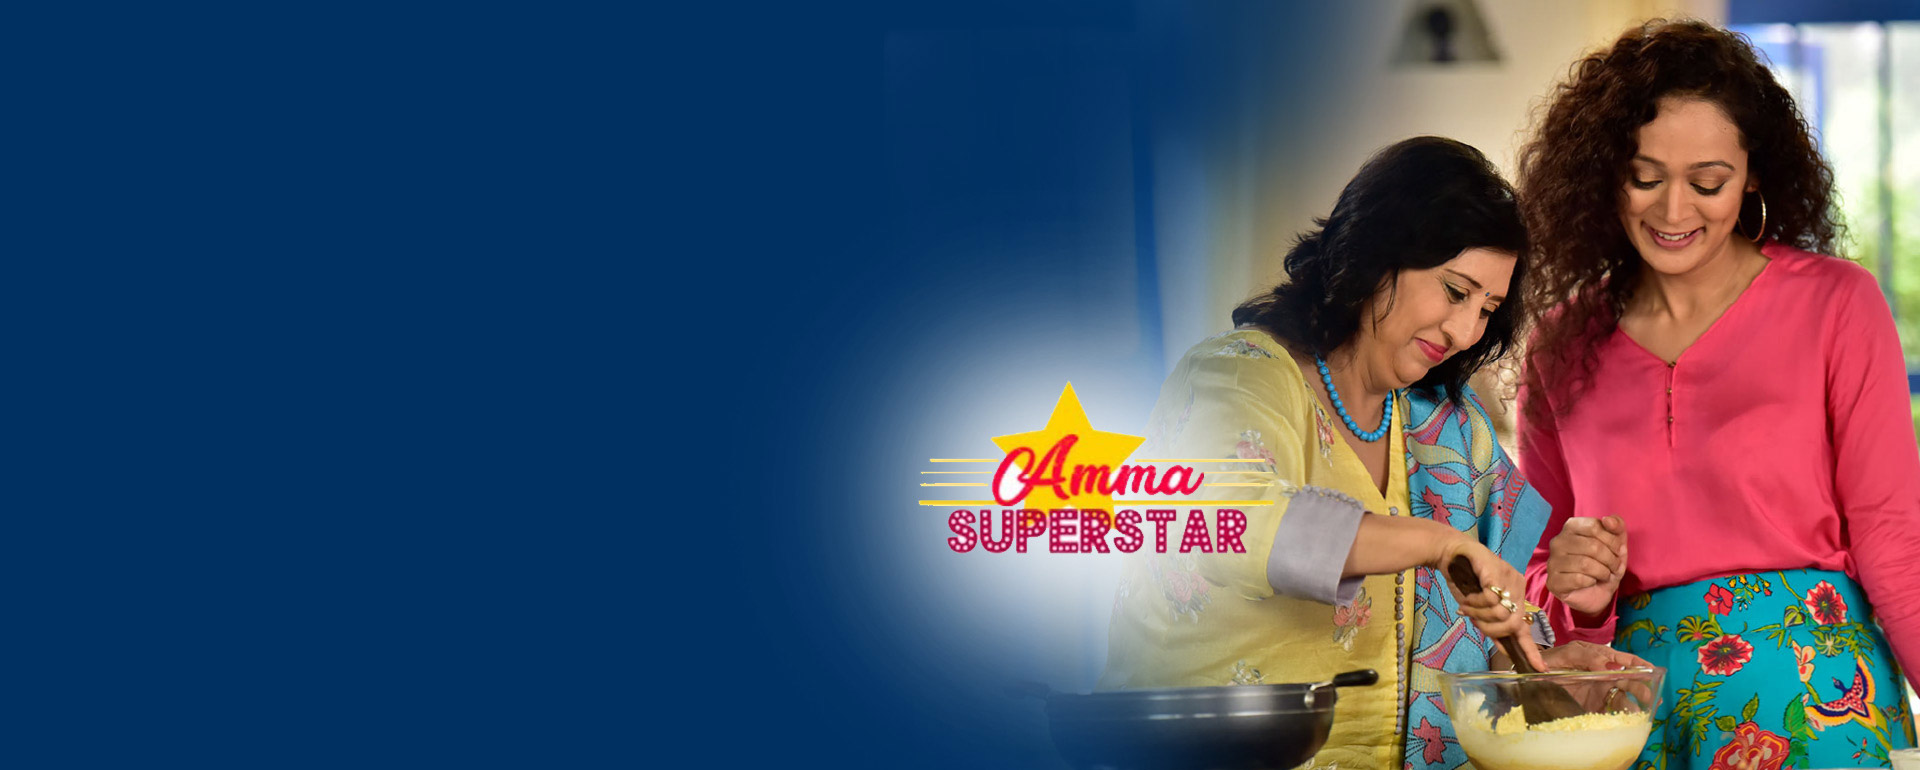 AMMA SUPERSTAR